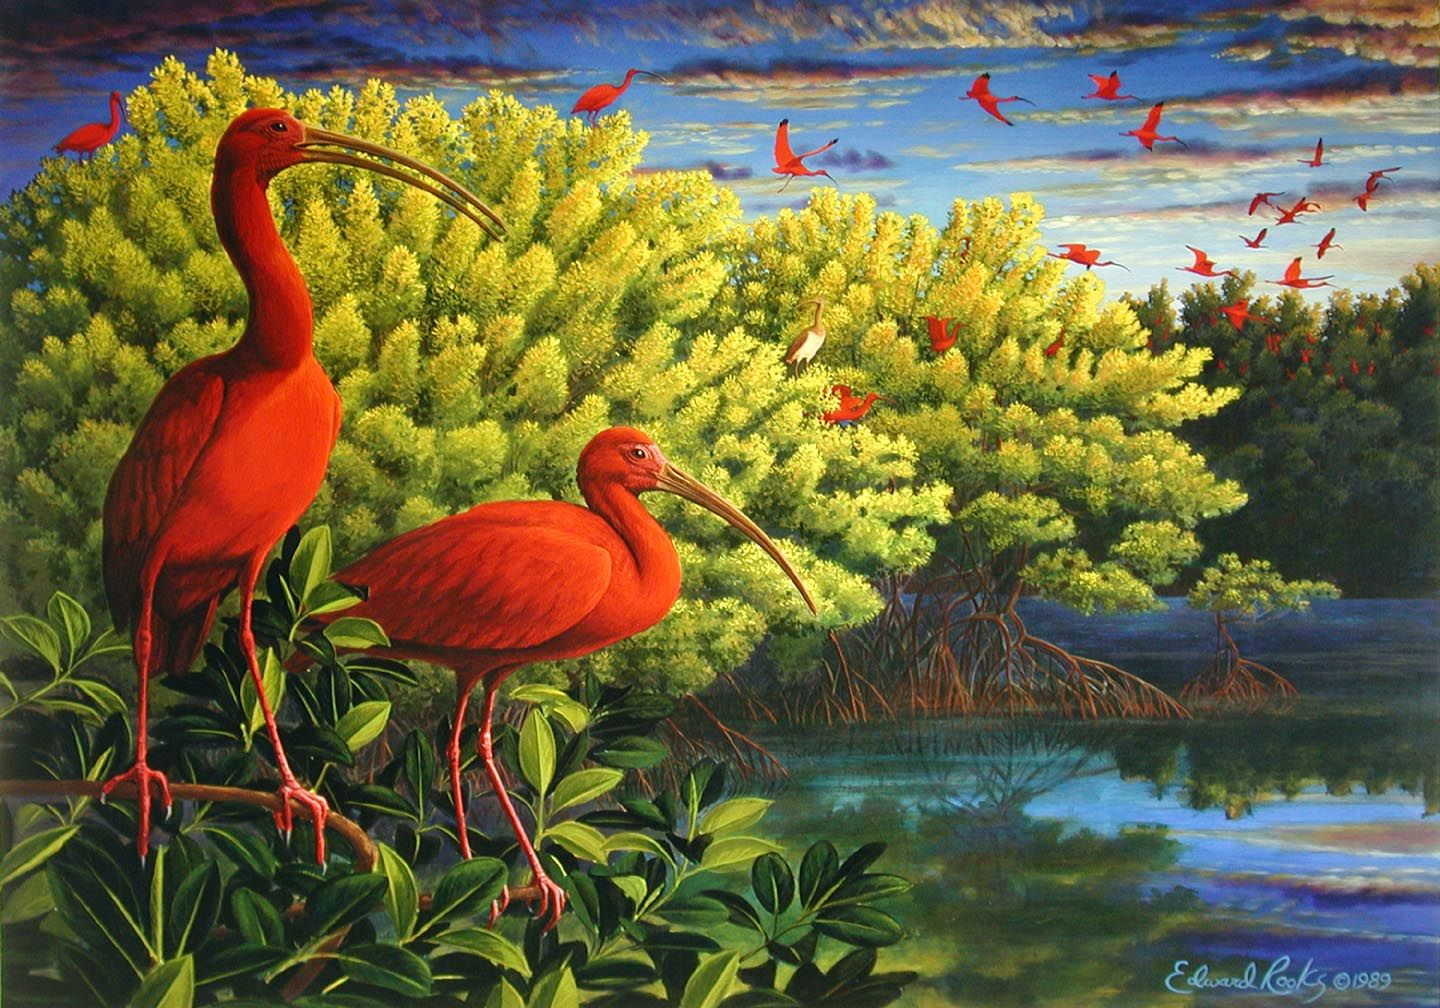 The Scarlet Ibis? By James Hurst???